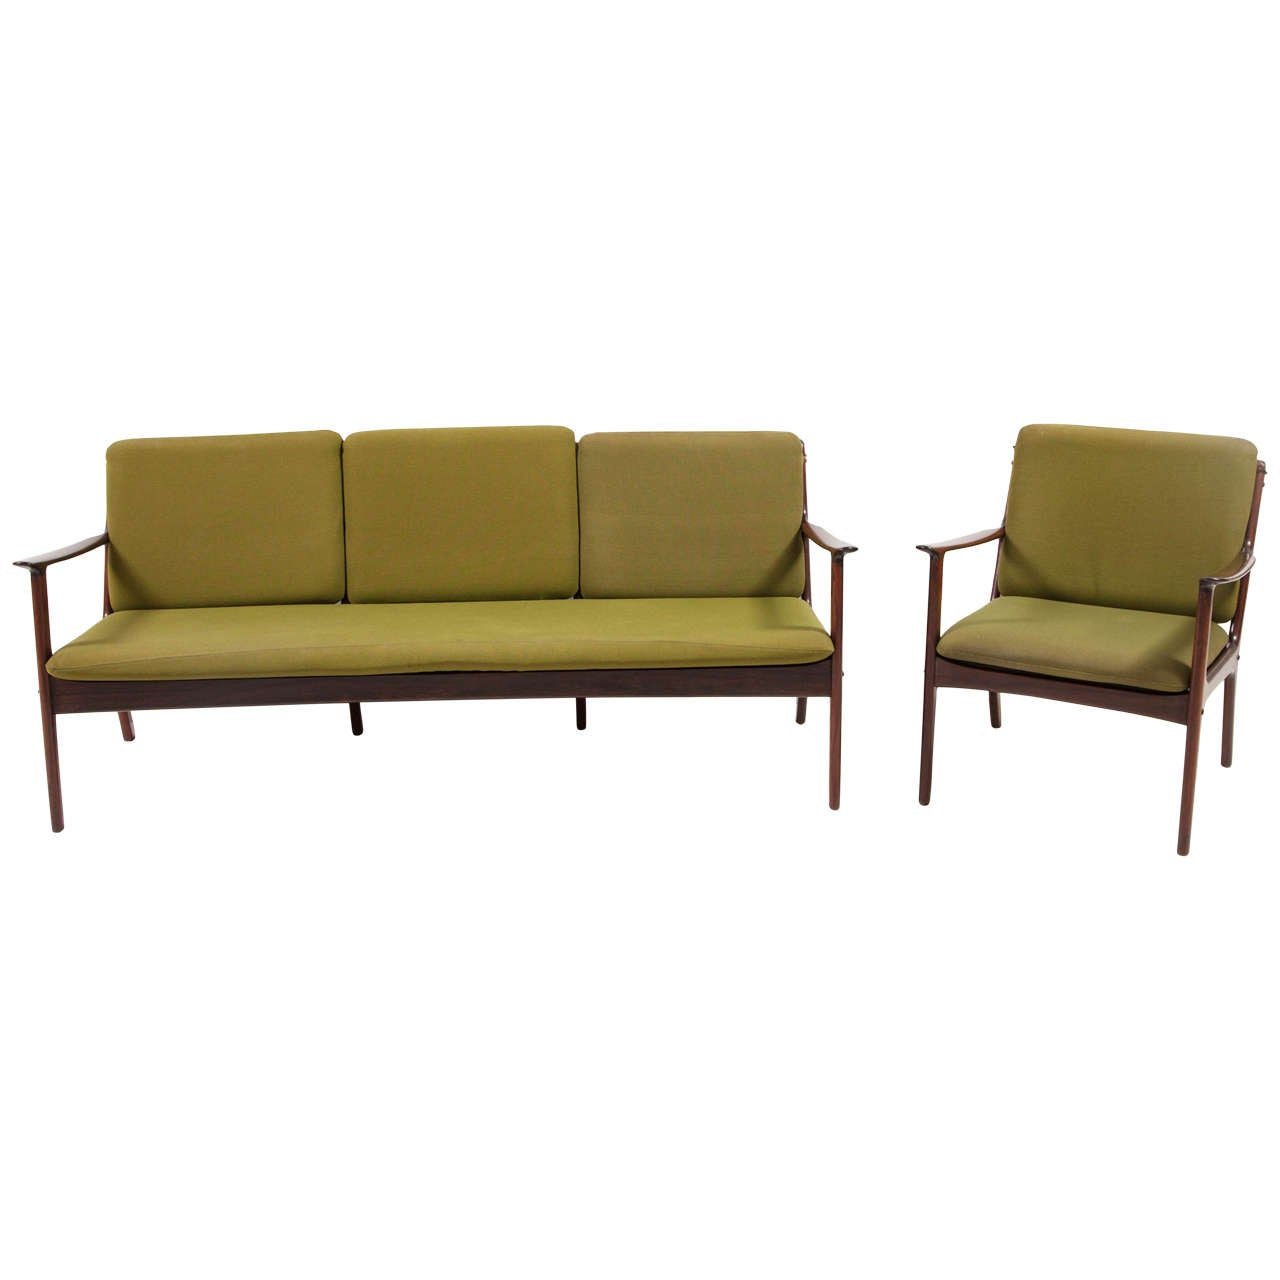 Ole Wanscher Rosewood Sofa and Chair Set 1